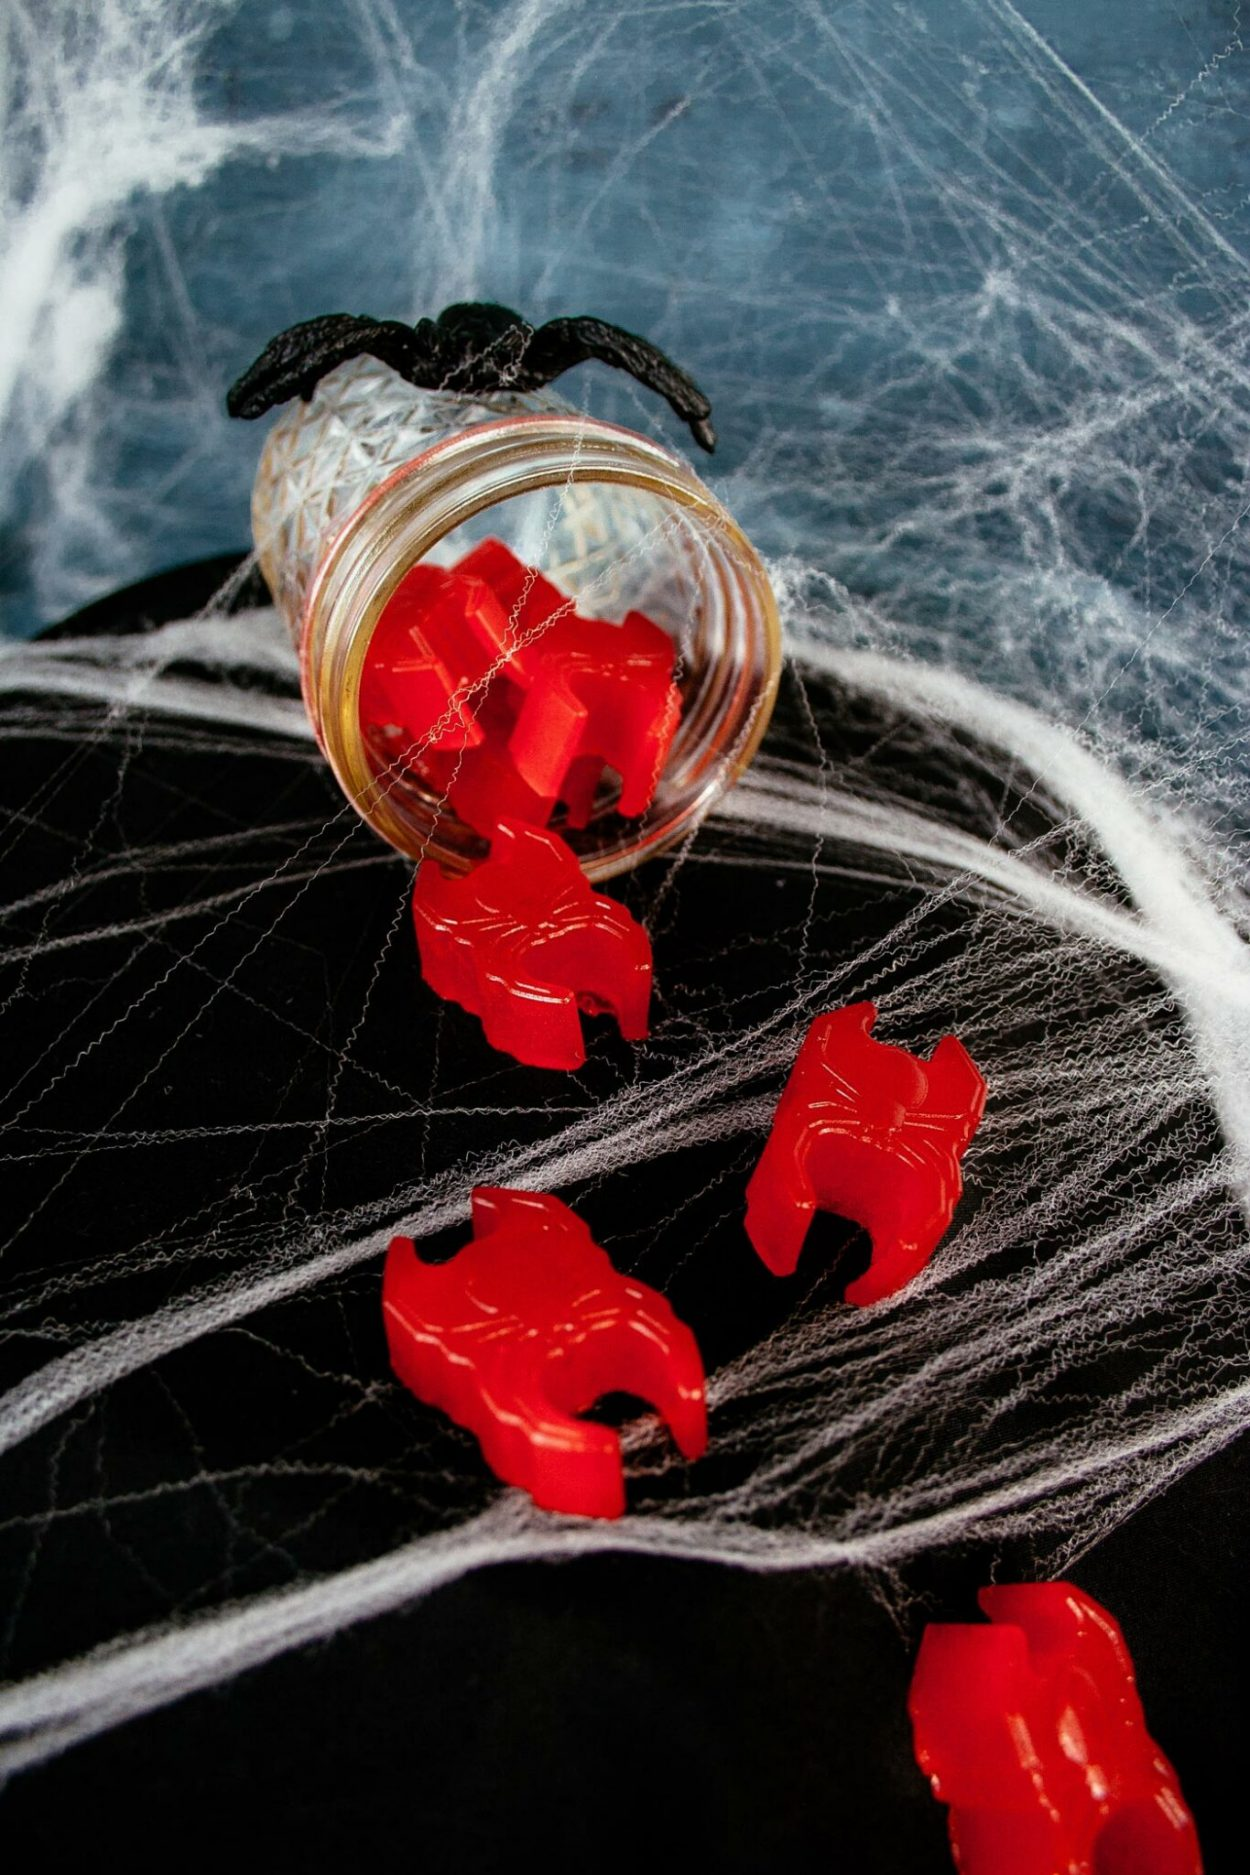 Drunken Gummy Spiders. Recipe for vodka gummy candy that looks like spiders. A fun adult Halloween treat that is easy to make and requires only 3 ingredients. These are similar to vodka gummy bears but require no soaking. #ElleTalk #Cocktails #halloween #vodka #candy